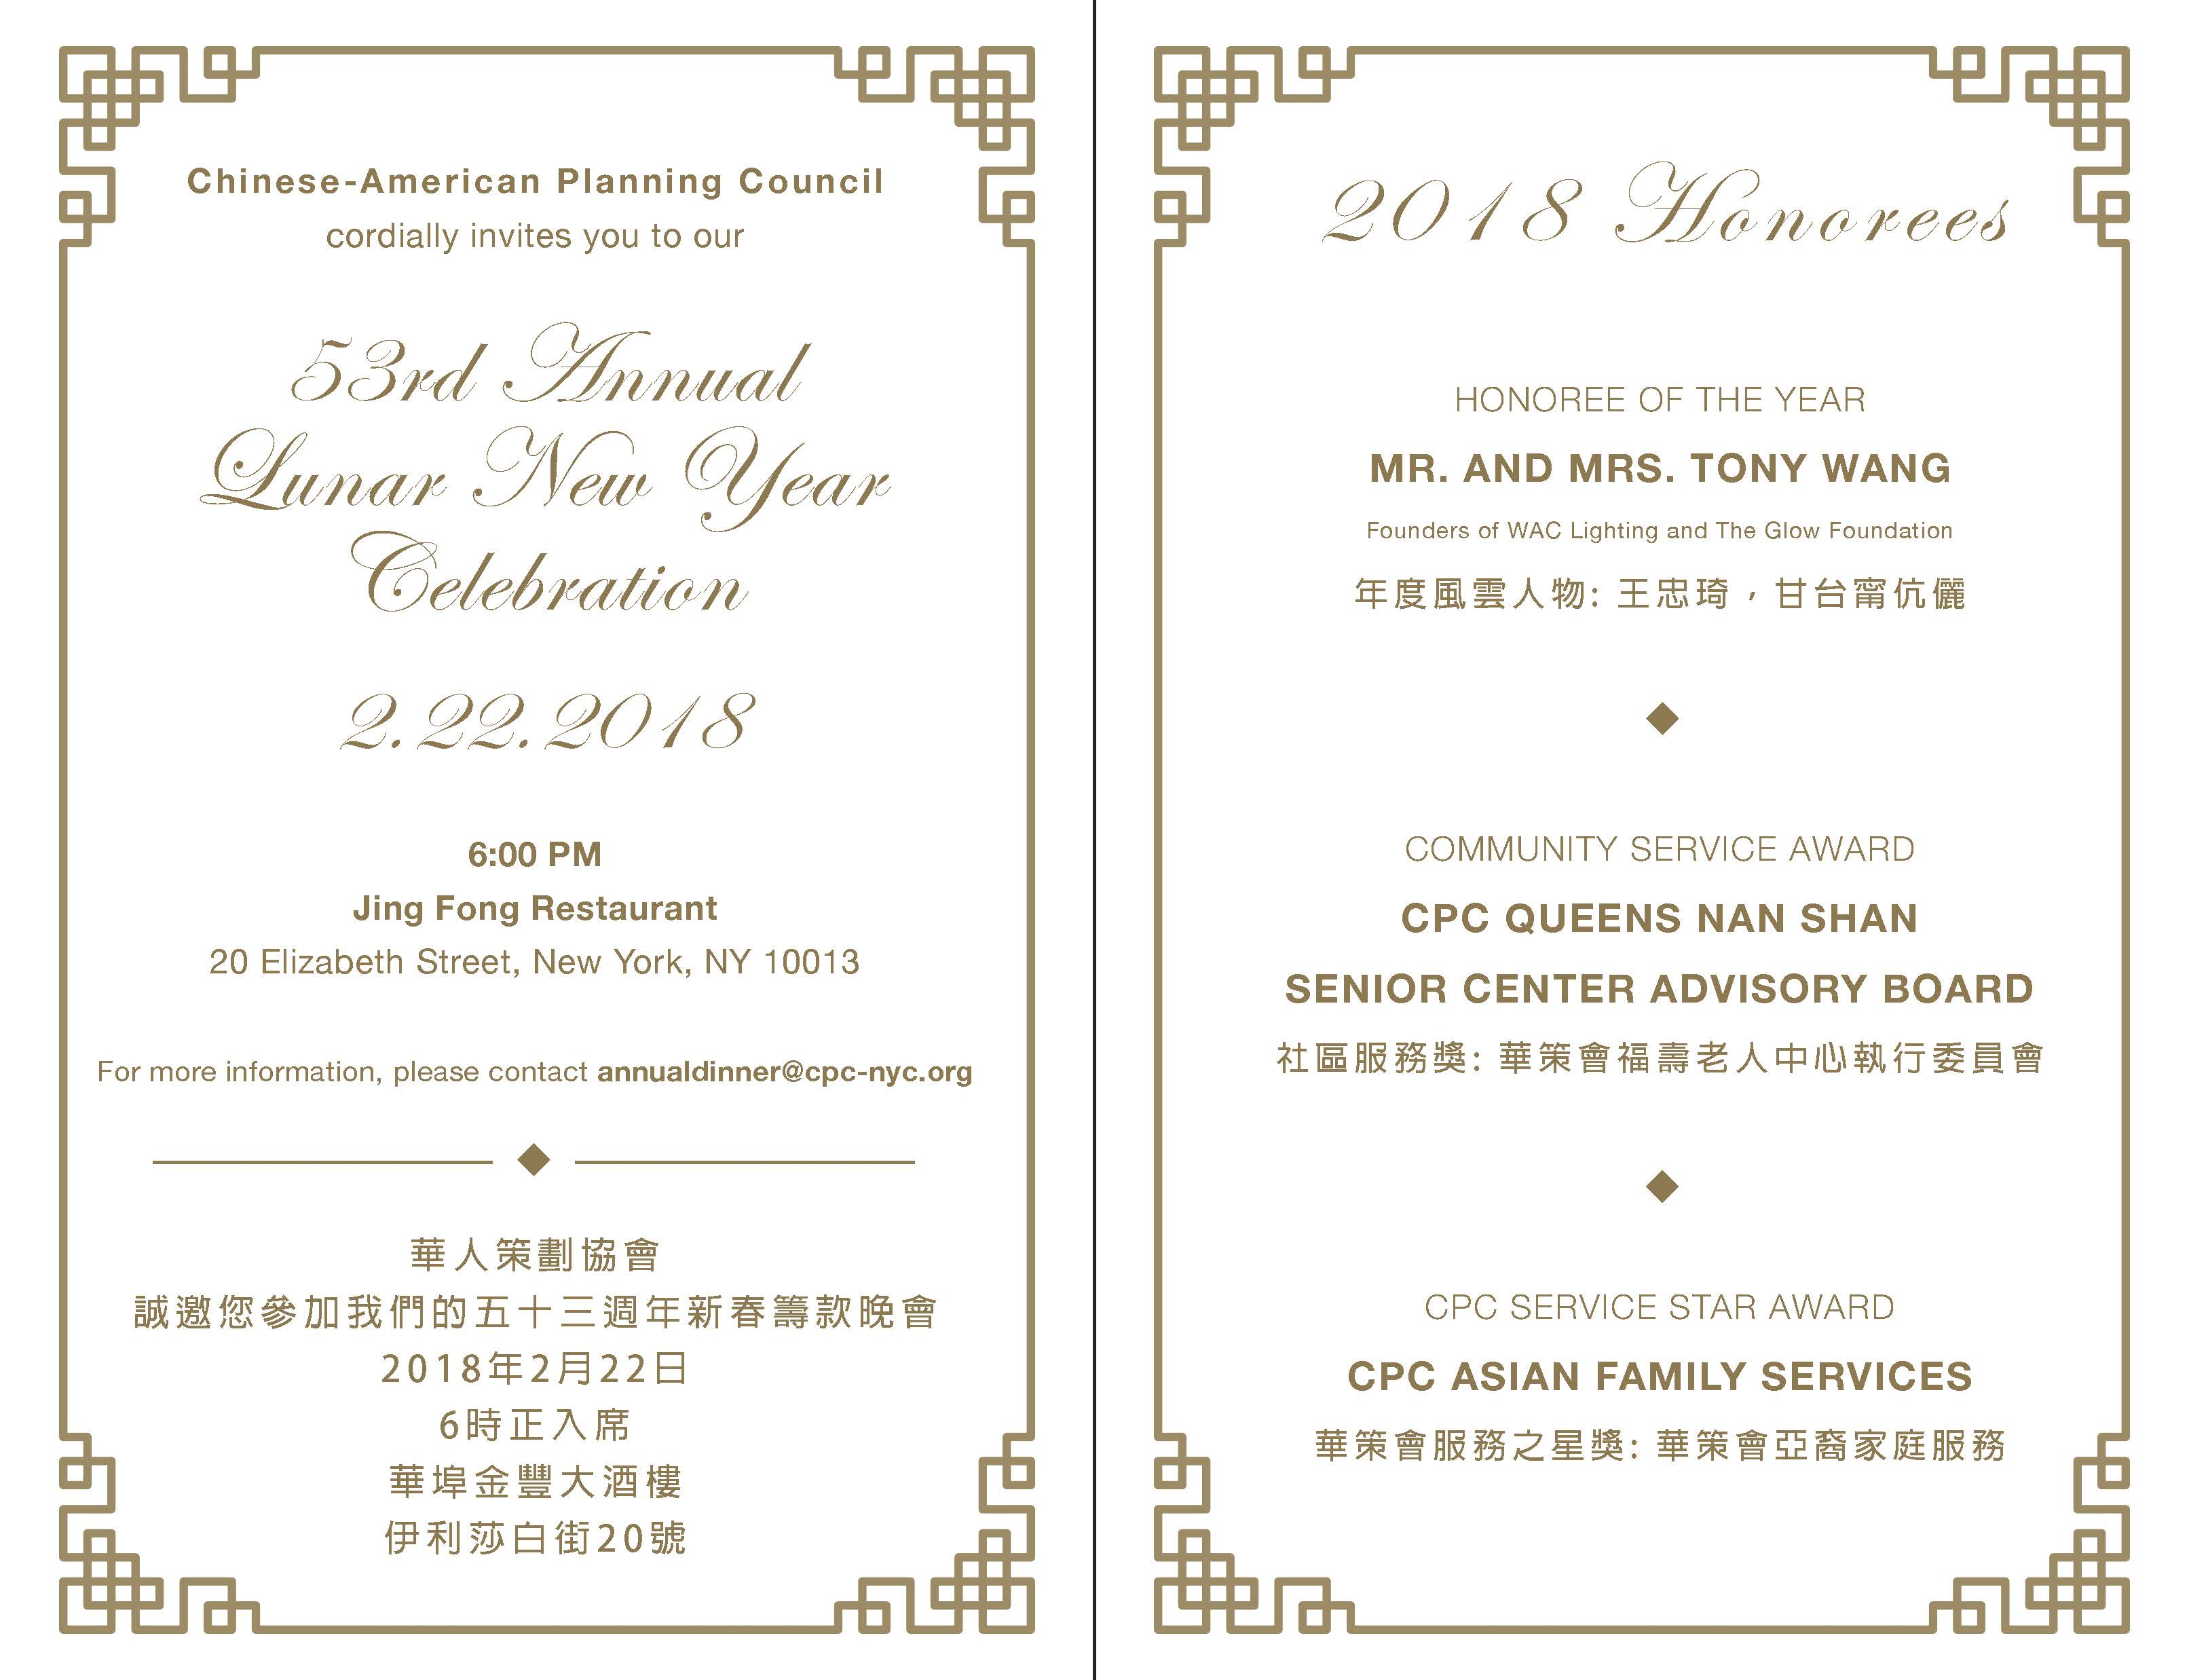 invitation cpc 53rd annual lunar new year celebration honorees